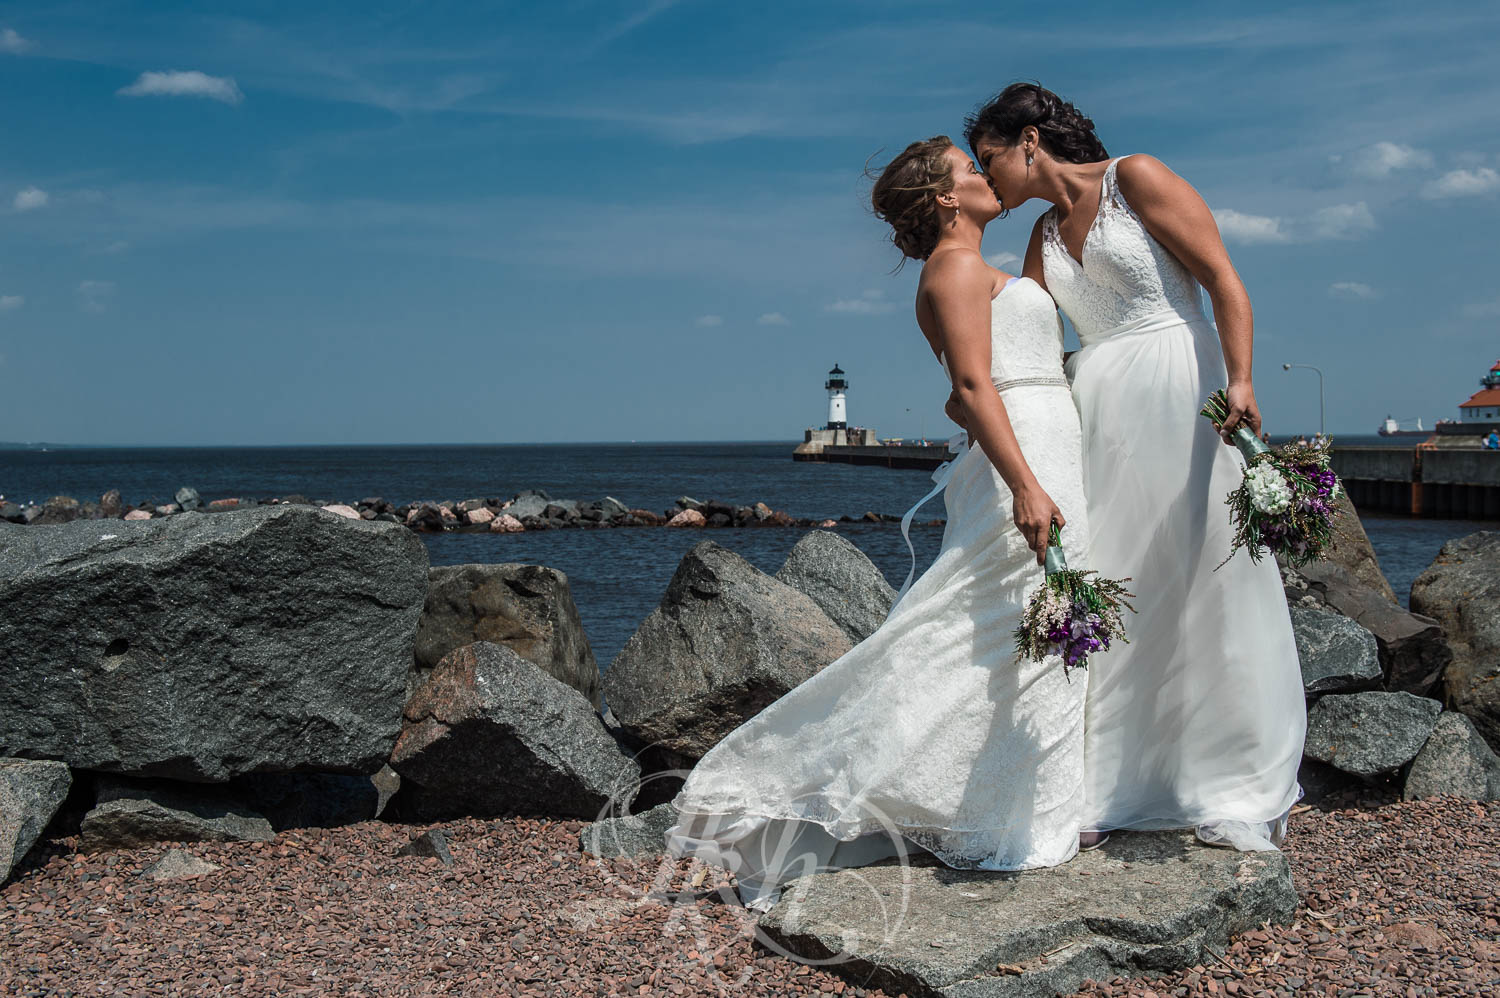 Britni & Paige - LGBT Minnesota Wedding Photography - Spirit Mountain - RKH Images  (27 of 32).jpg